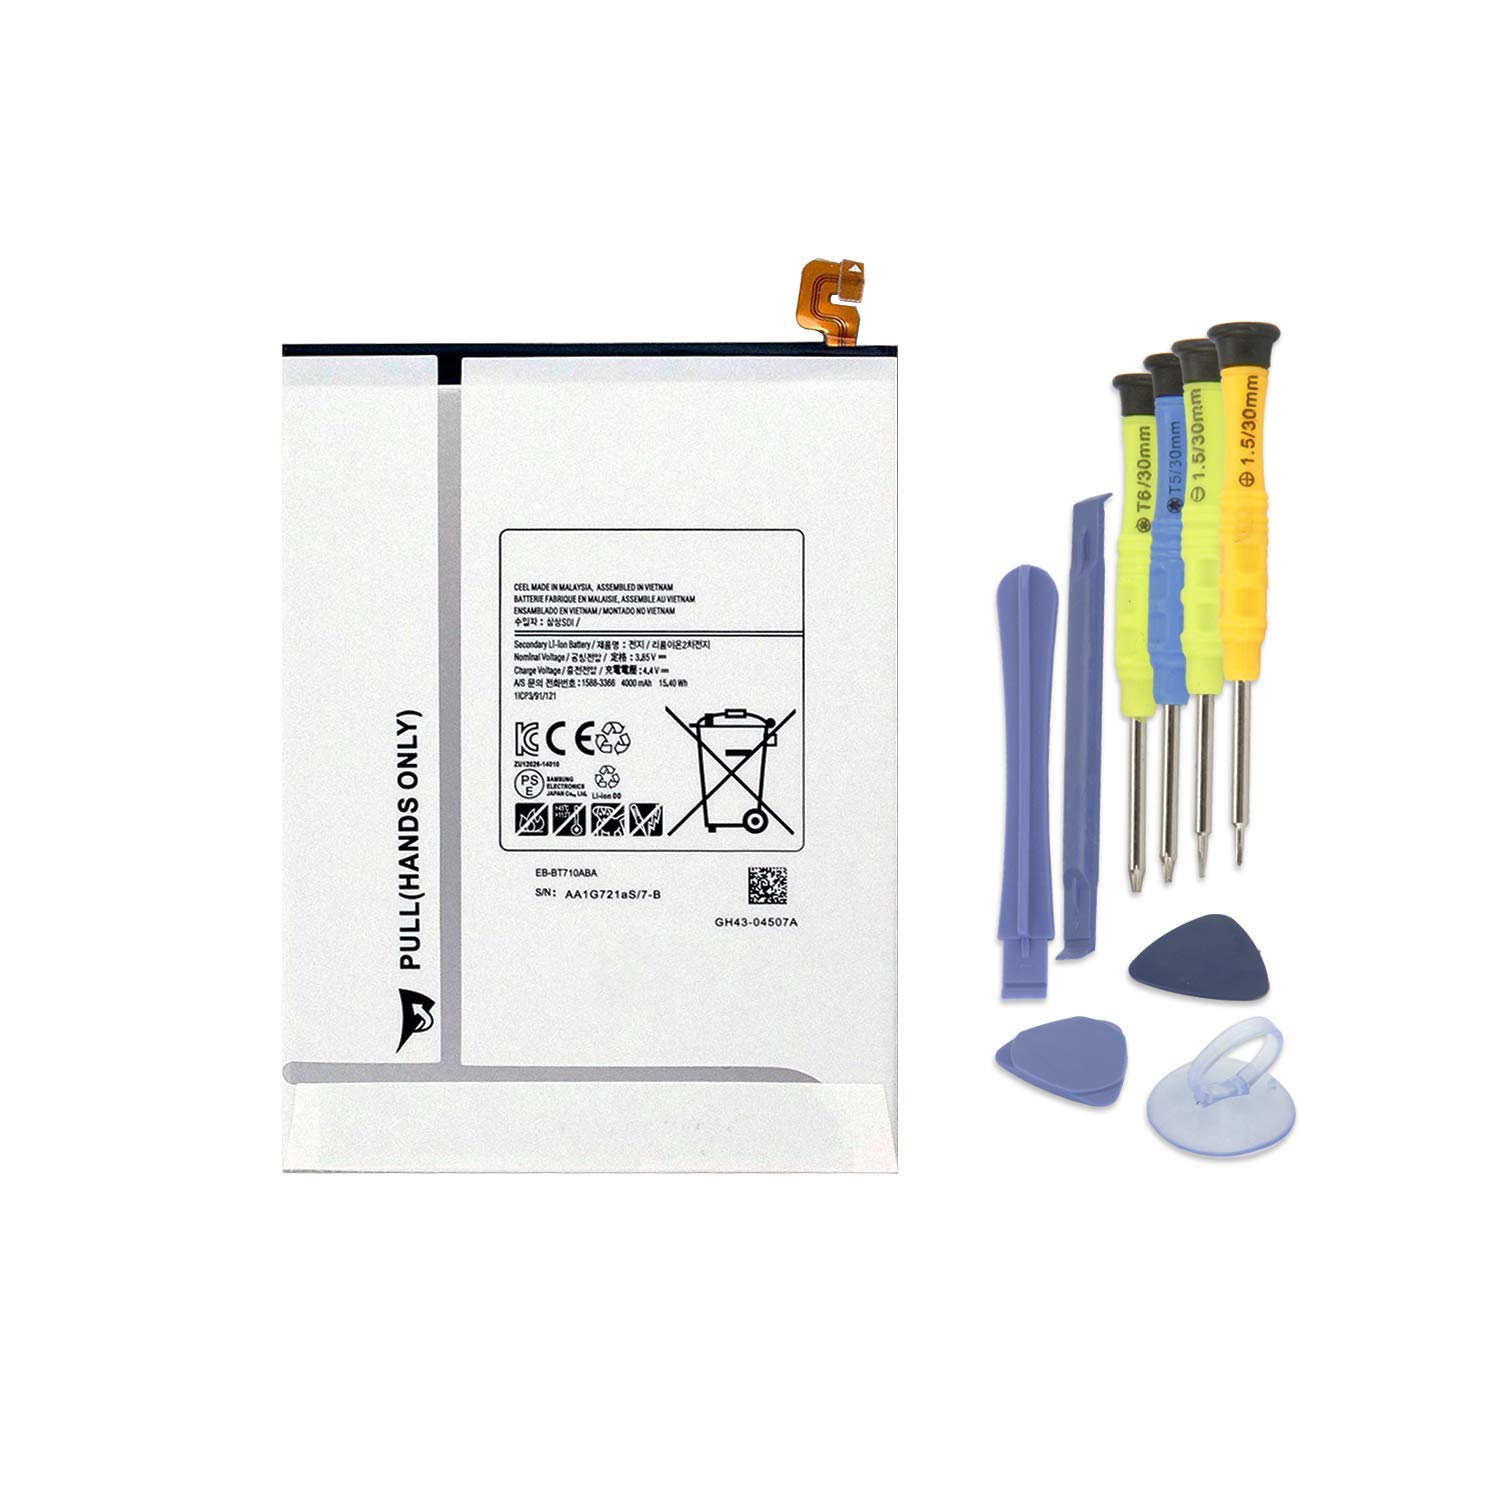 ZTHY New EB-BT710ABE Battery Replacement for Samsung Galaxy Tab S2 8.0 WiFi LTE-A T710 T715 T719 3G/LTE T719N SM-T710 SM-T713 SM-T715 SM-T715C SM-T719Y Tablet EB-BT710ABA EB-BT710ABC 15.4Wh 4000mAh by ZTHY